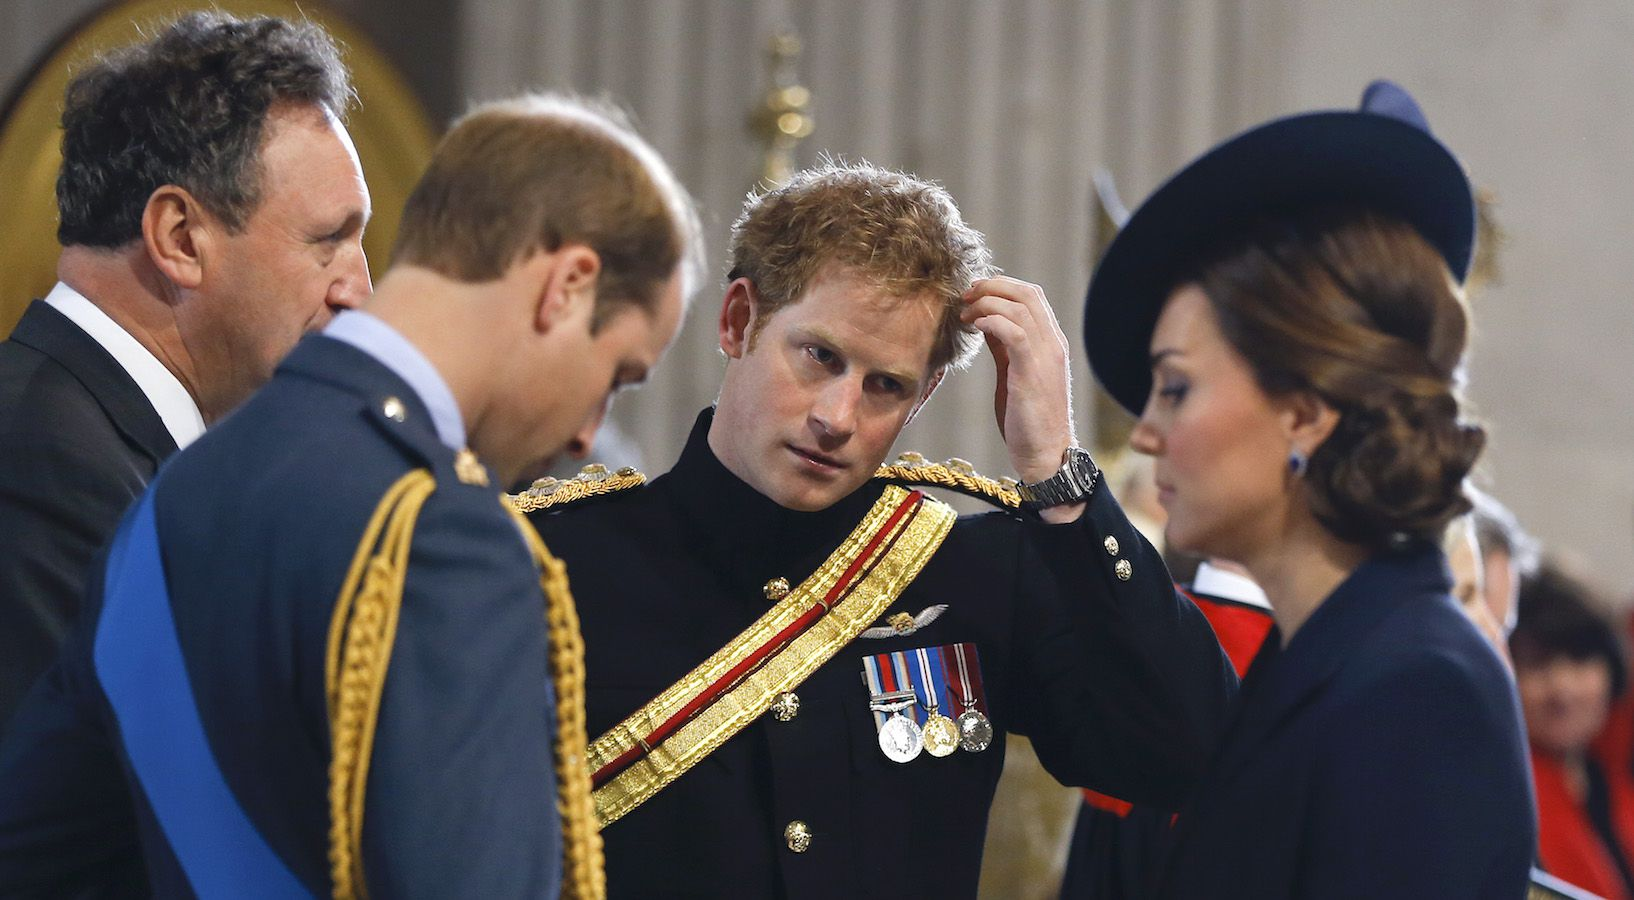 Britain's Prince Harry, center, stands with Prince William, left, and Kate, the Duchess of Cambridge as they arrive to attend the Service of Commemoration – Afghanistan, at St Paul's Cathedral in London, Friday, March 13, 2015. The Queen and Britain's prime minister are joining veterans in a service to commemorate the end of Britain's combat operations in Afghanistan. Prince William, his pregnant wife Kate, and Prince Harry — who served two tours during the conflict — will also attend the ceremony to remember the war dead. Almost 150,000 Britons served in the conflict, and 453 died. (AP Photo/Kirsty Wigglesworth, pool)